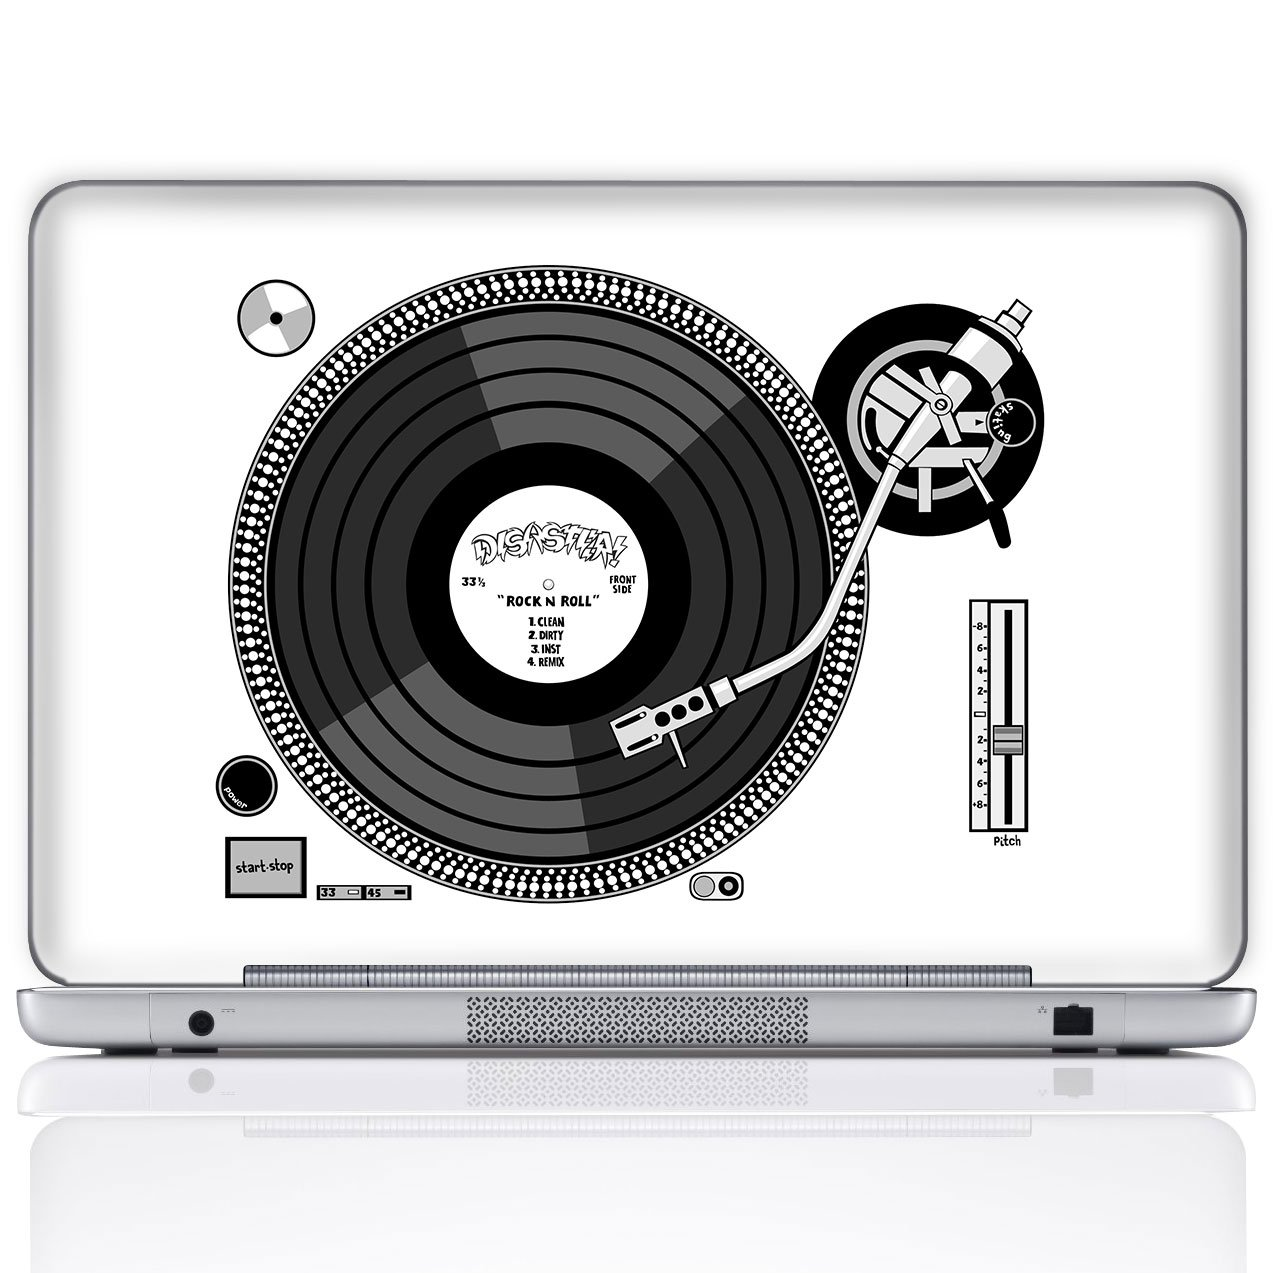 Meffort Inc 14 Inch Laptop Notebook Skin Sticker Cover Art Decal (Free Wrist pad) - Record Player